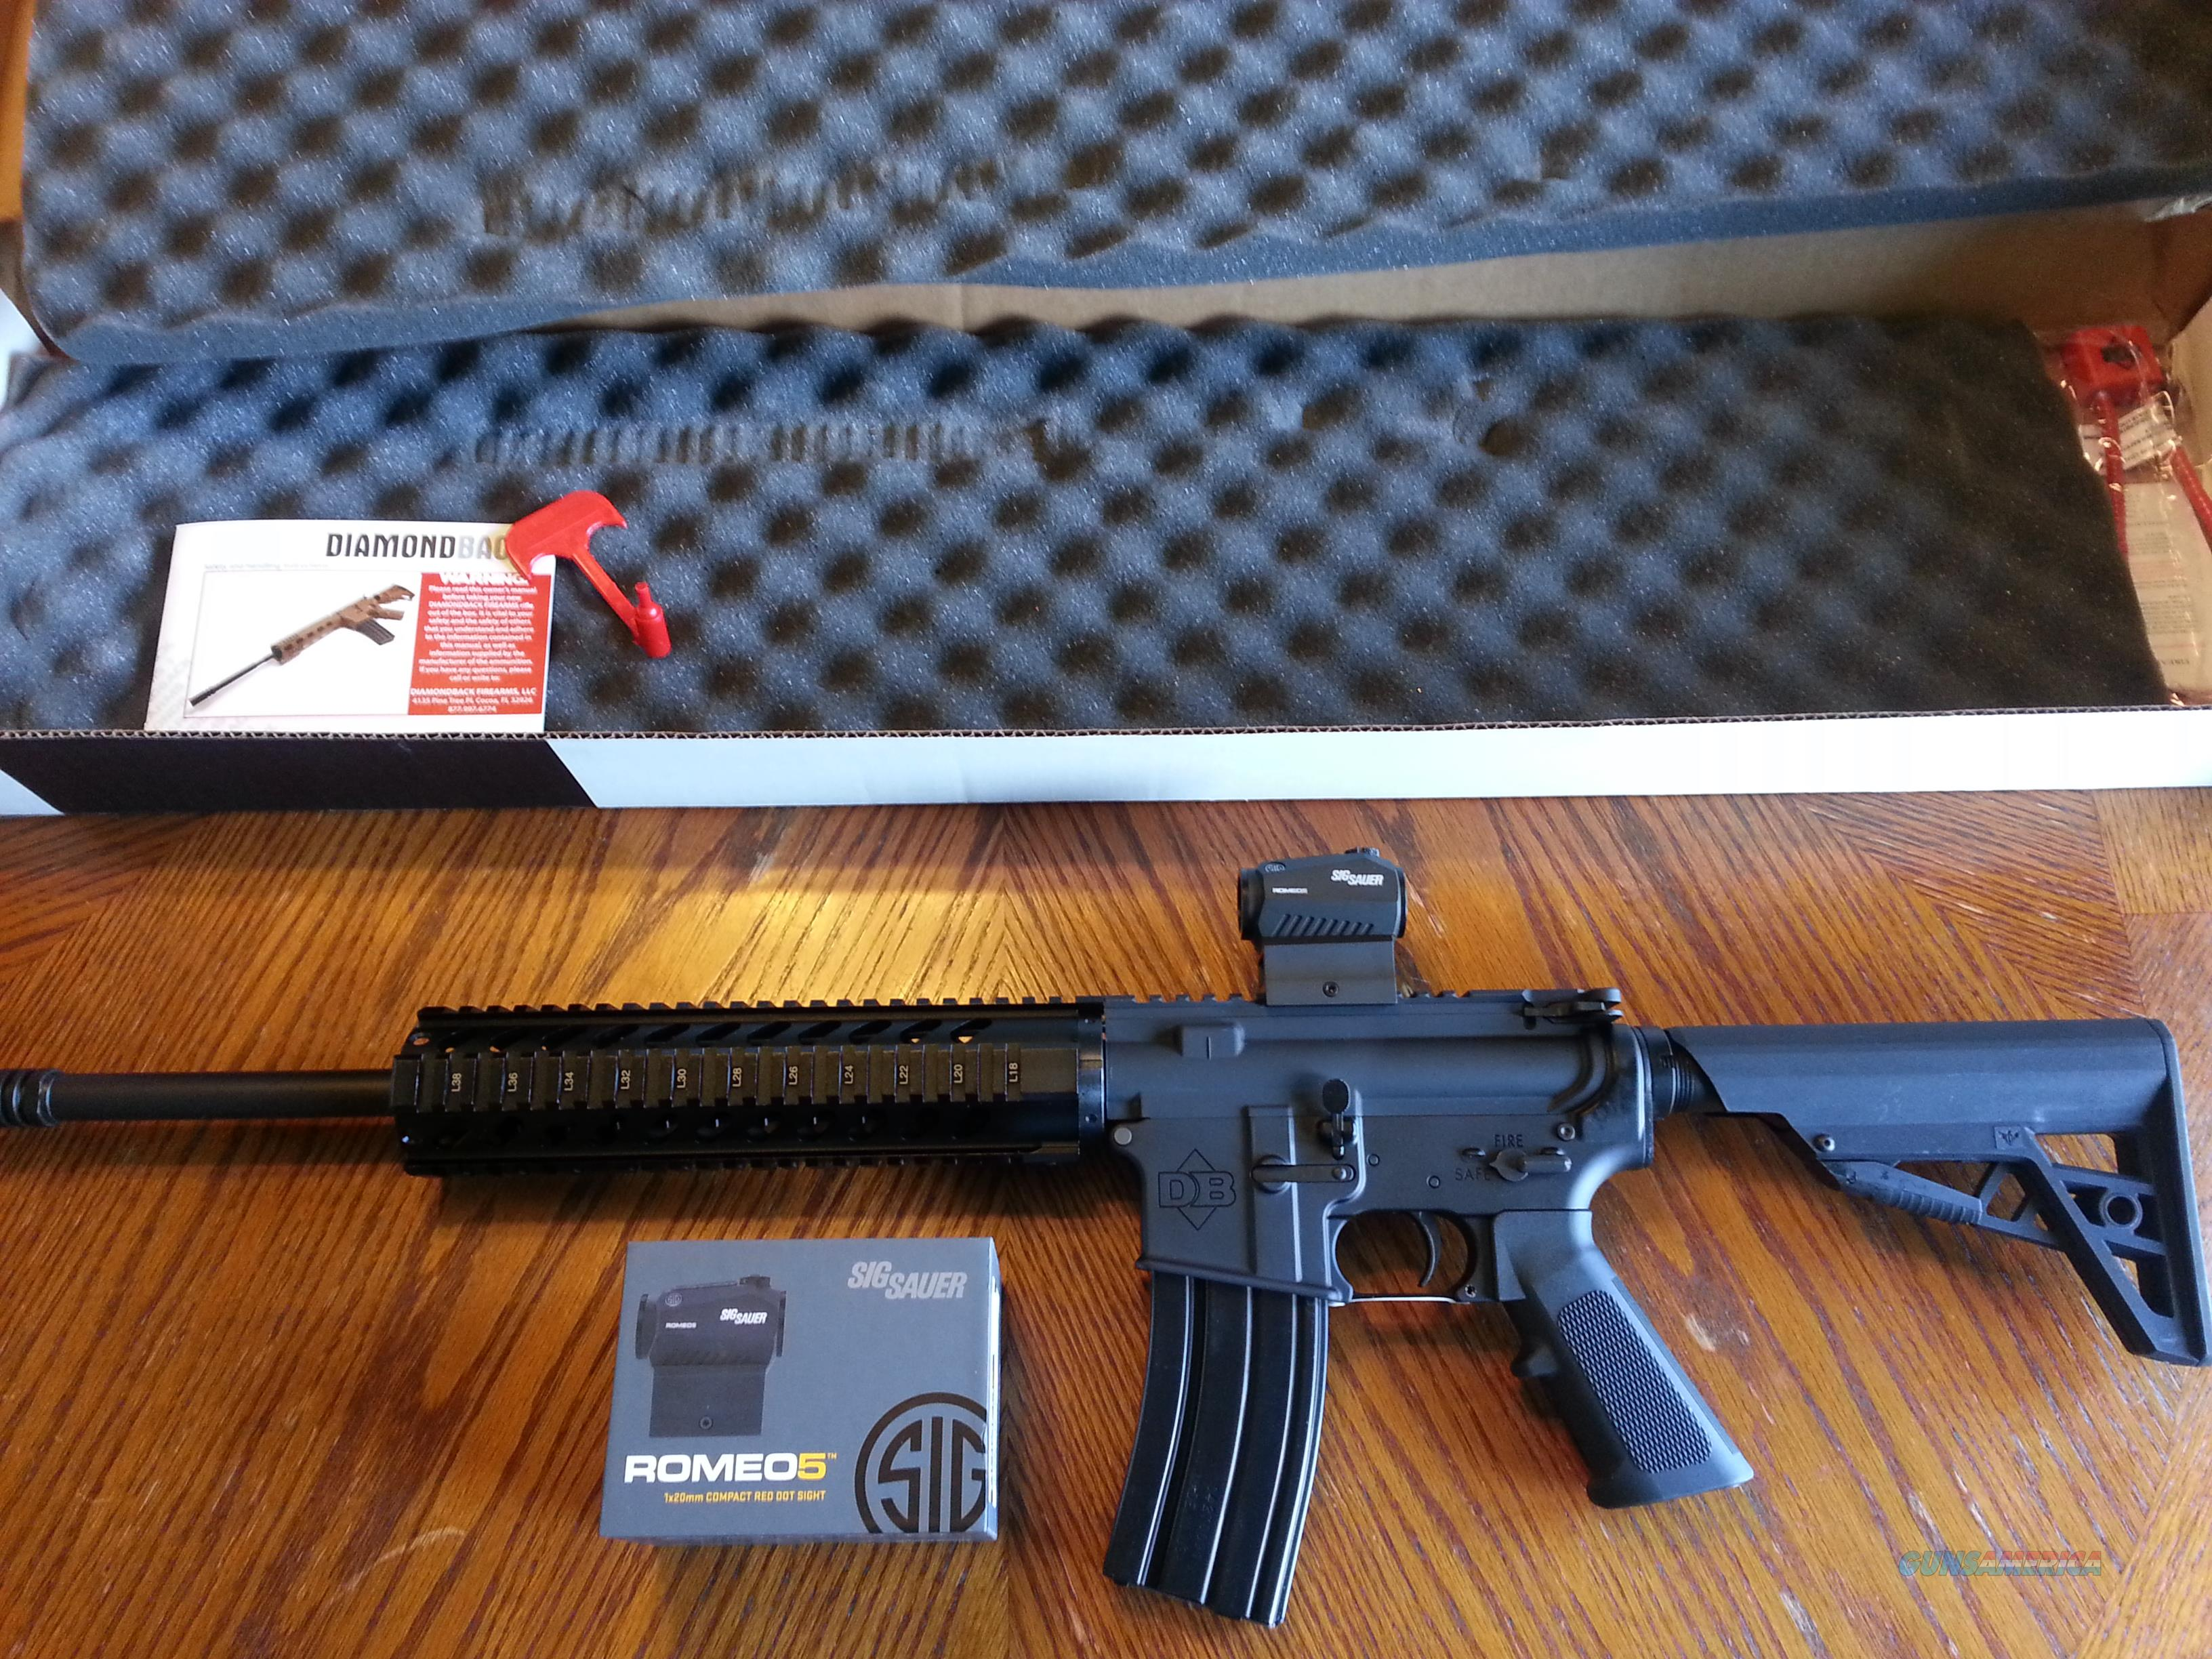 "Diamondback AR15 AR 15 DB15-CCB & SIG ROMEO 5 RED DOT COMBO LIFETIME WARRANTY 223/5.56 NIB Alum. Quad Rail 30 rd Mag 16"" Carbine FREE LAYAWAY!!  Guns > Rifles > AR-15 Rifles - Small Manufacturers > Complete Rifle"